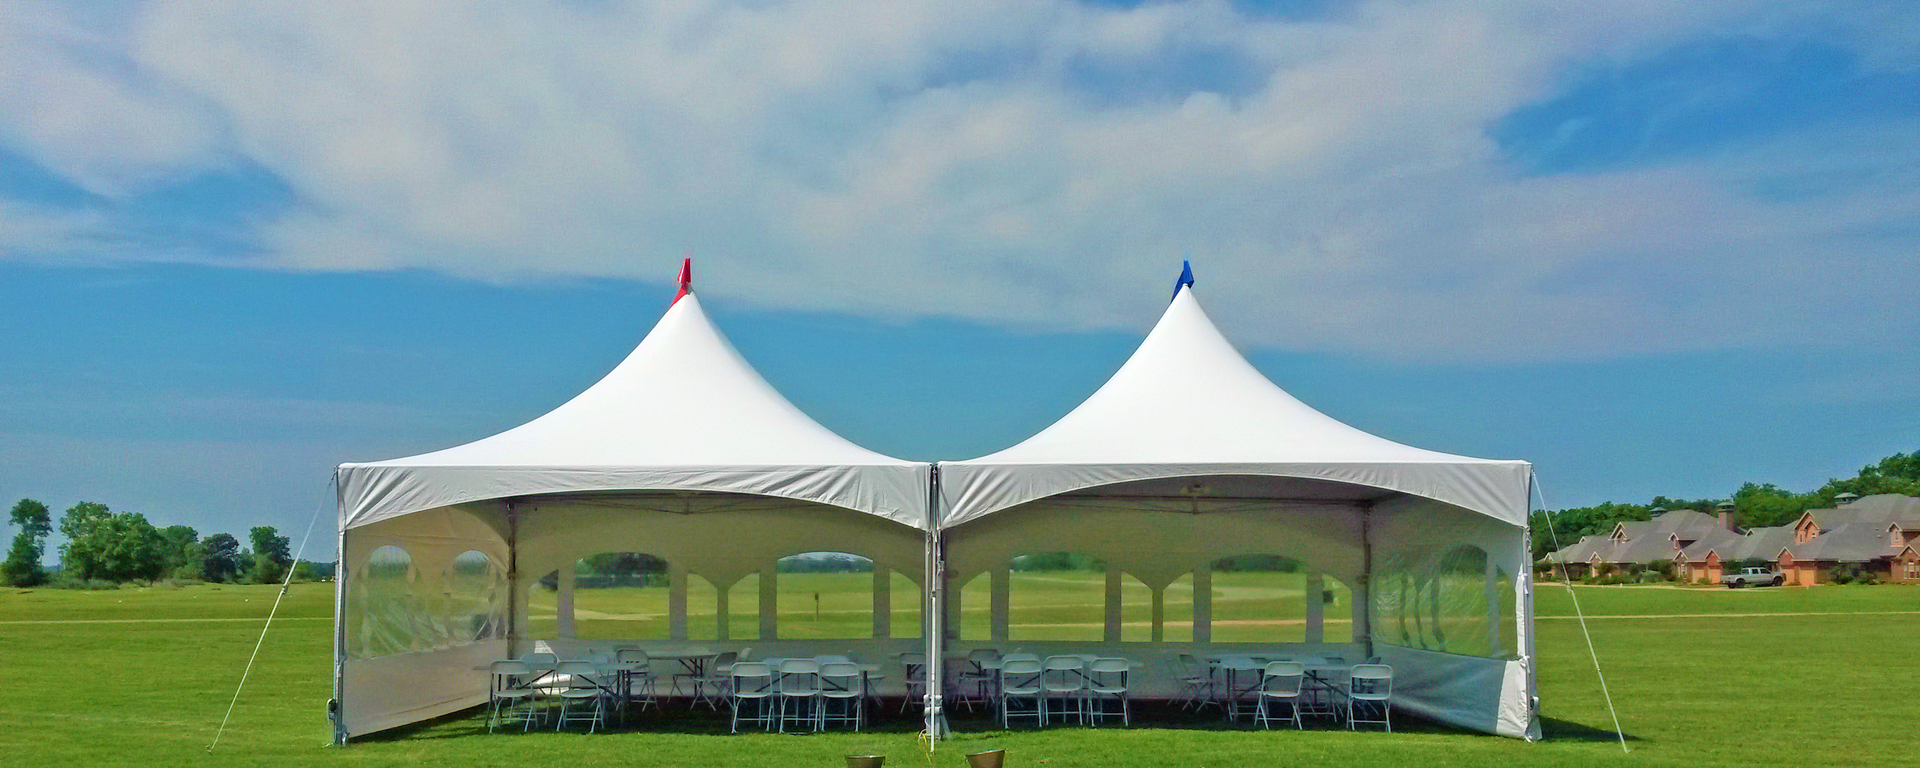 tent rental in springfield ma